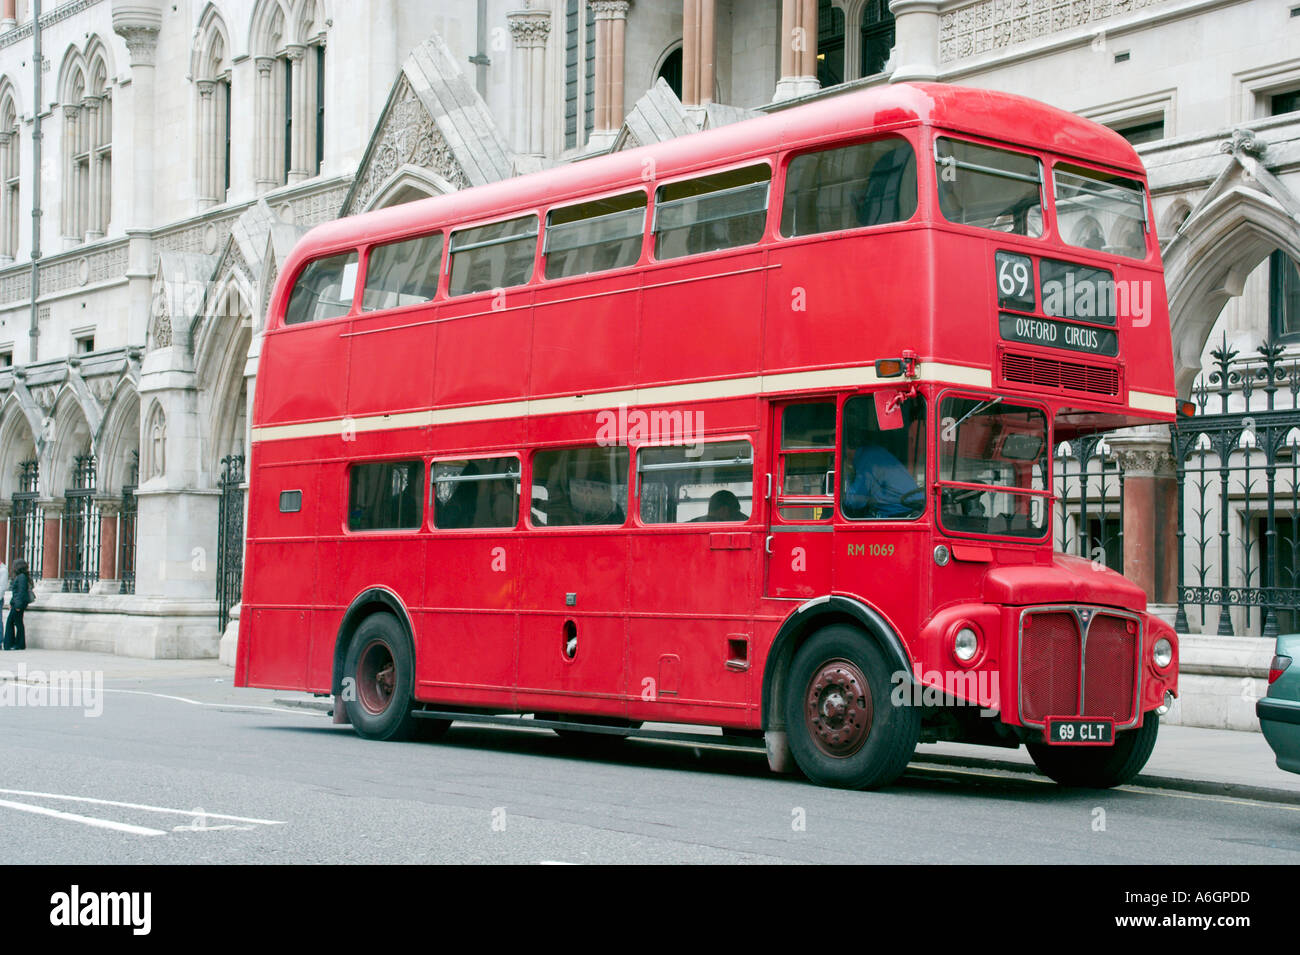 Double Decker Routemaster Red Bus in London England - Stock Image